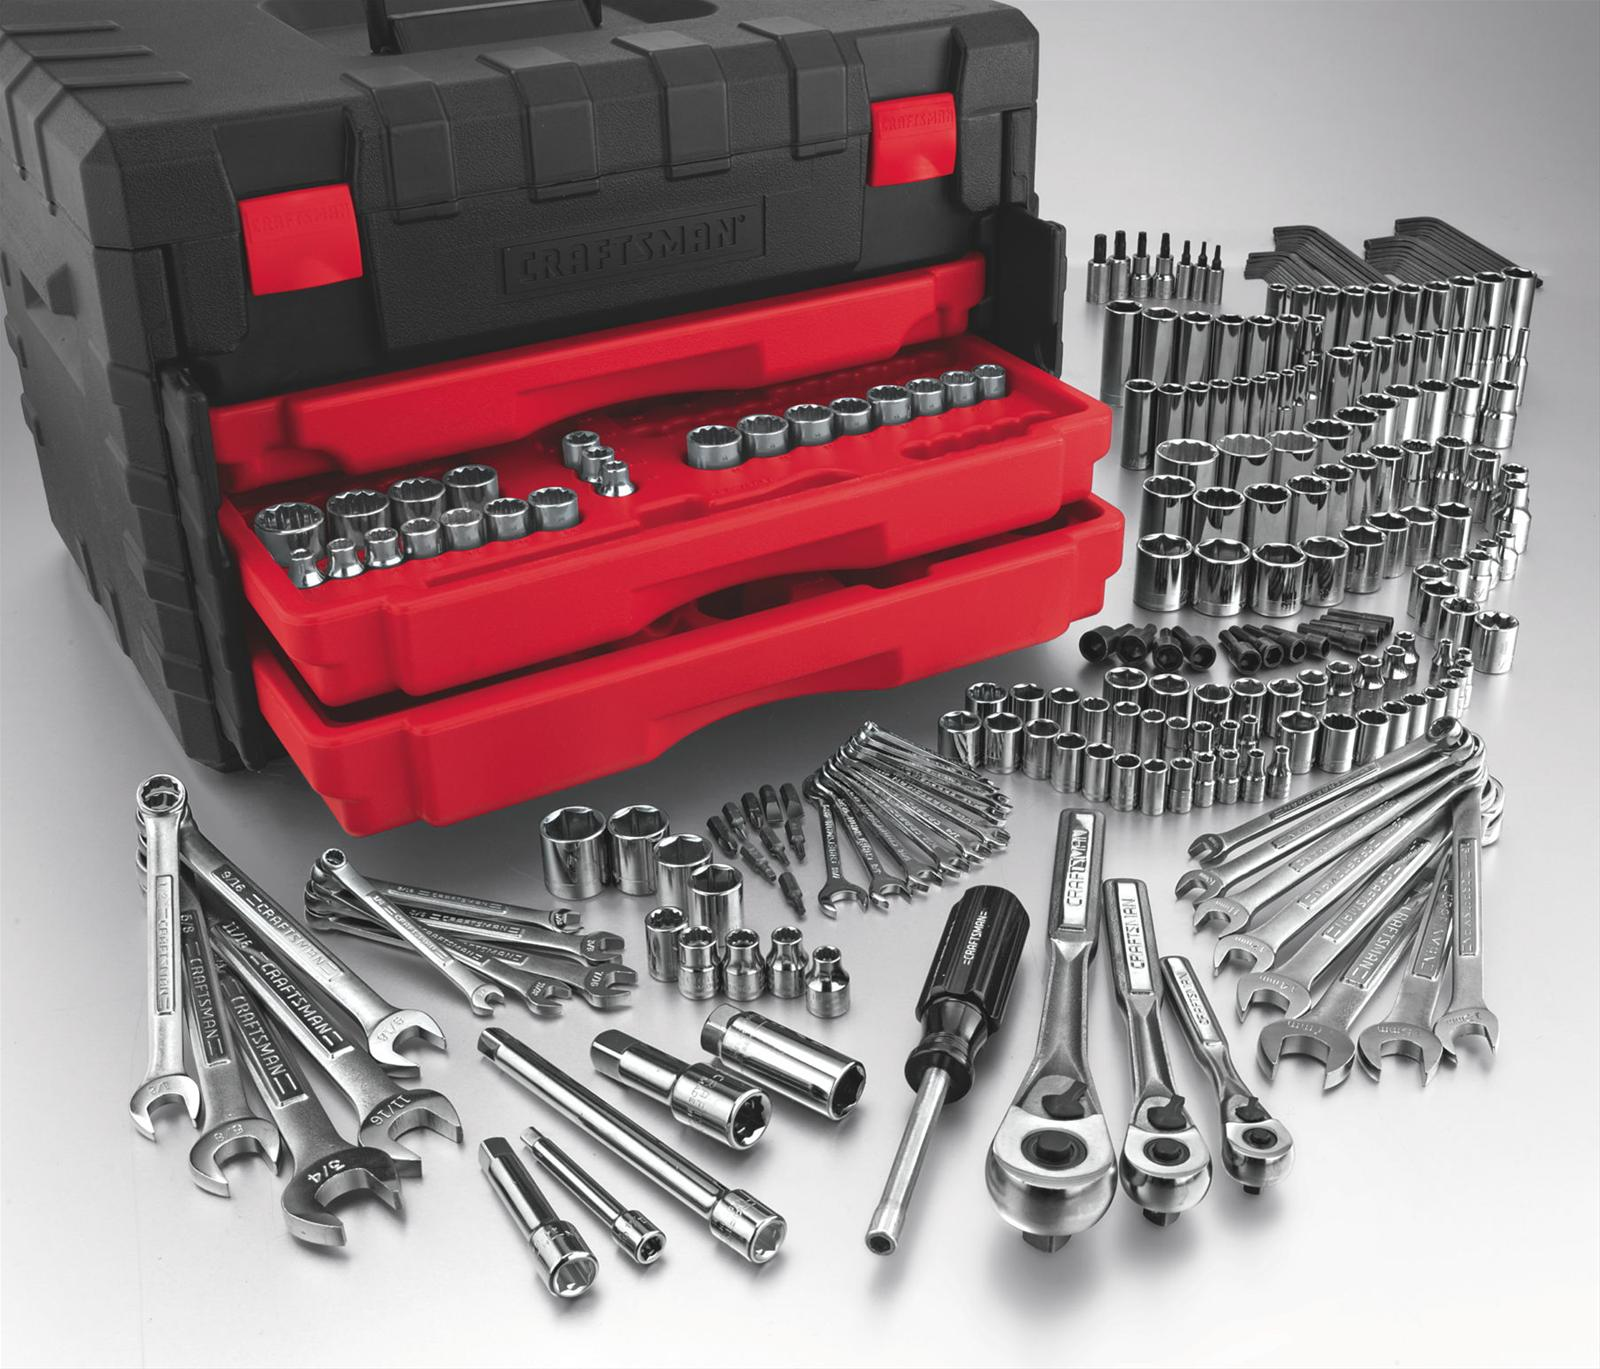 Craftsman 255 Piece Mechanics Tool Sets 009 35255 Free